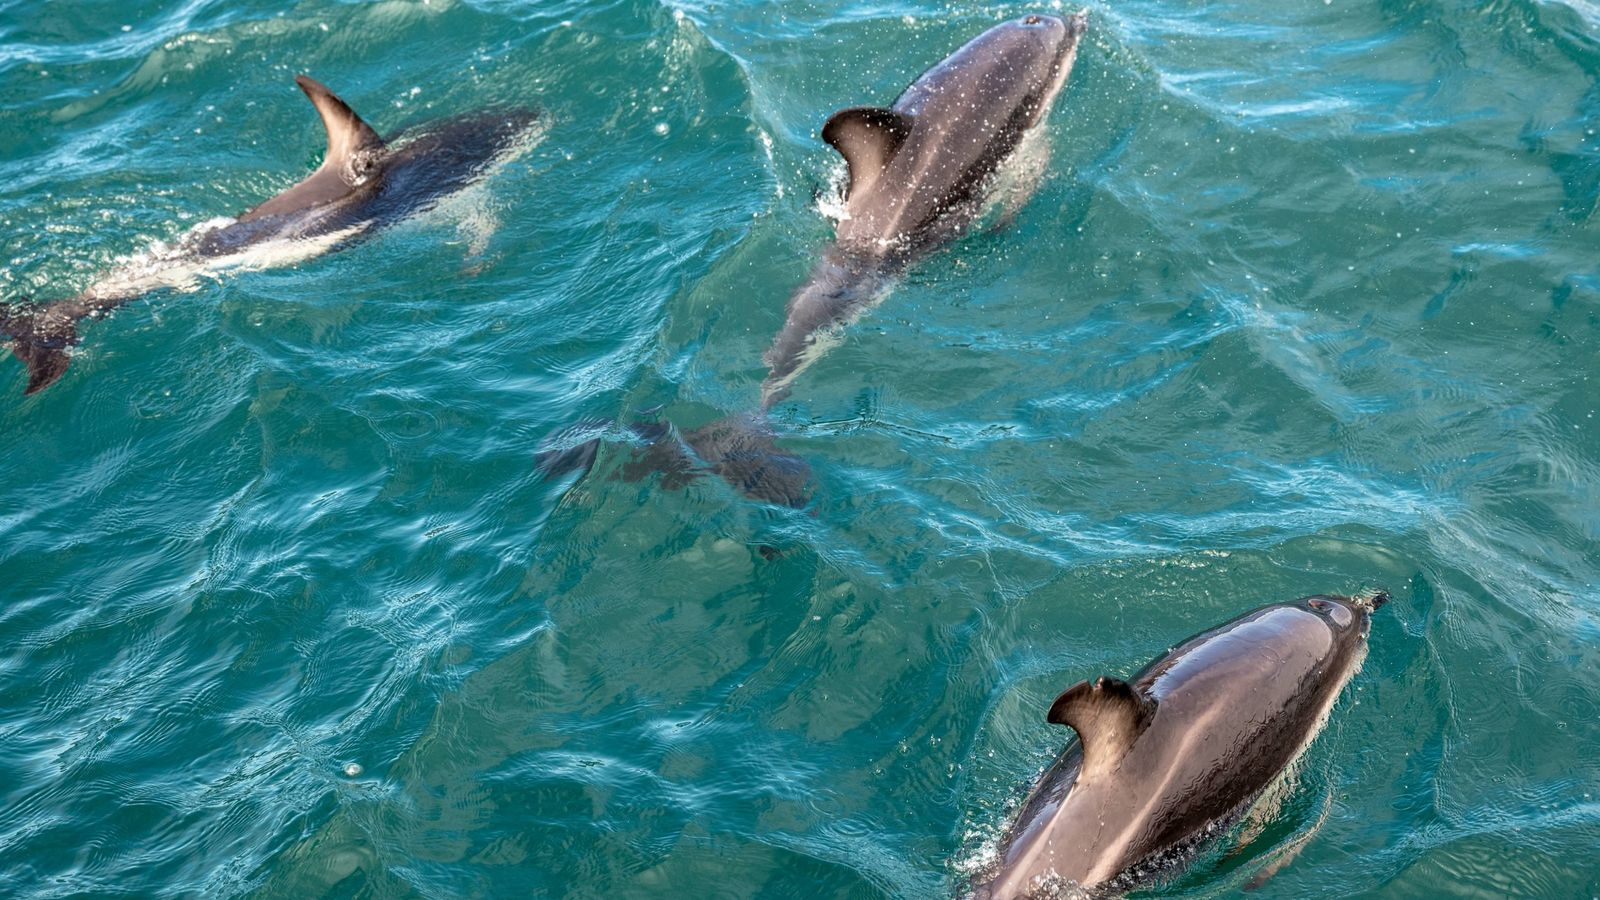 Dolphins frolic in the waters off Kaikōura, New Zealand.